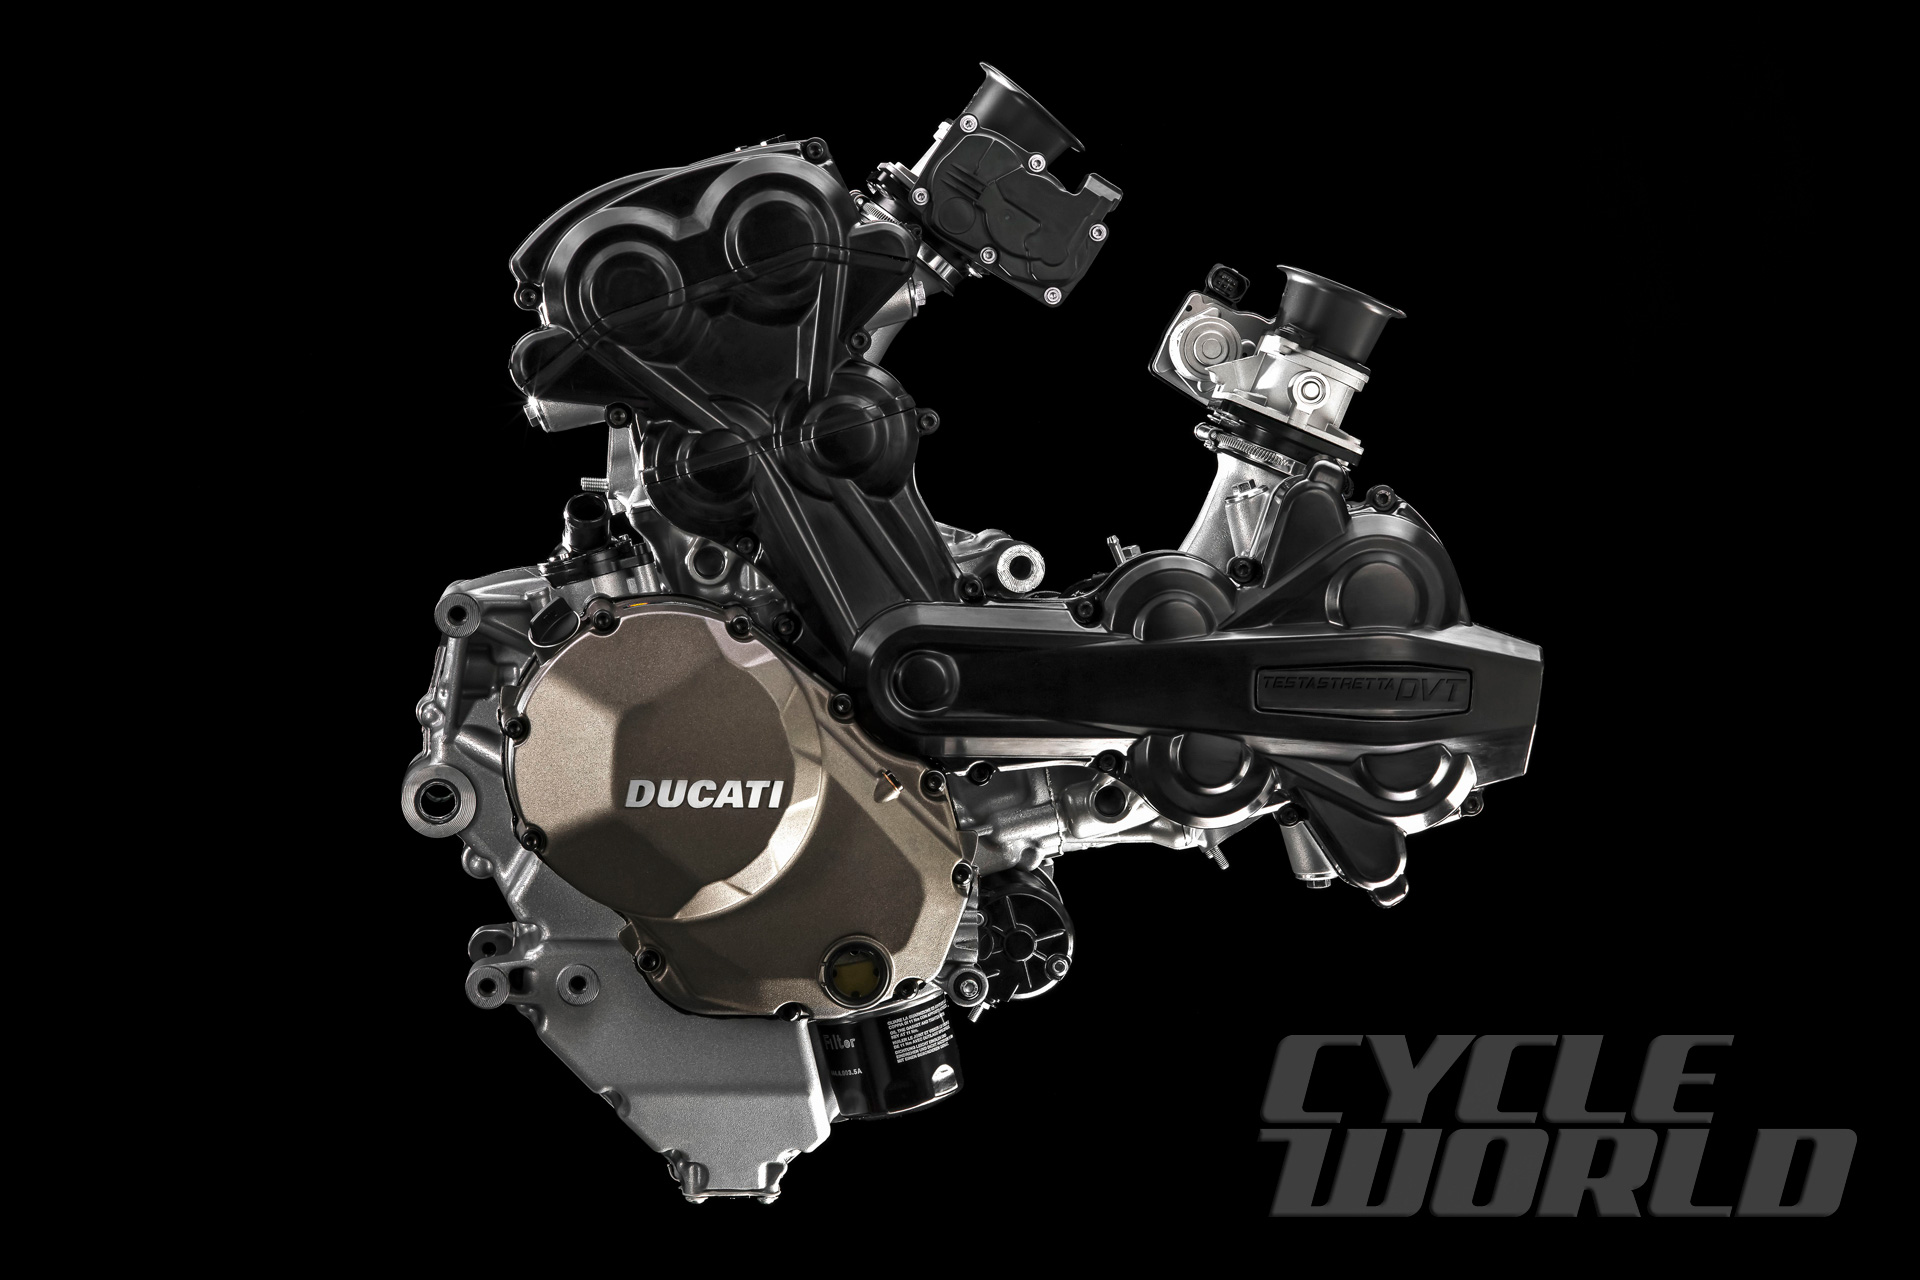 Why Don't Motorcycles Have Gasoline Direct Injection (GDI) and Cam